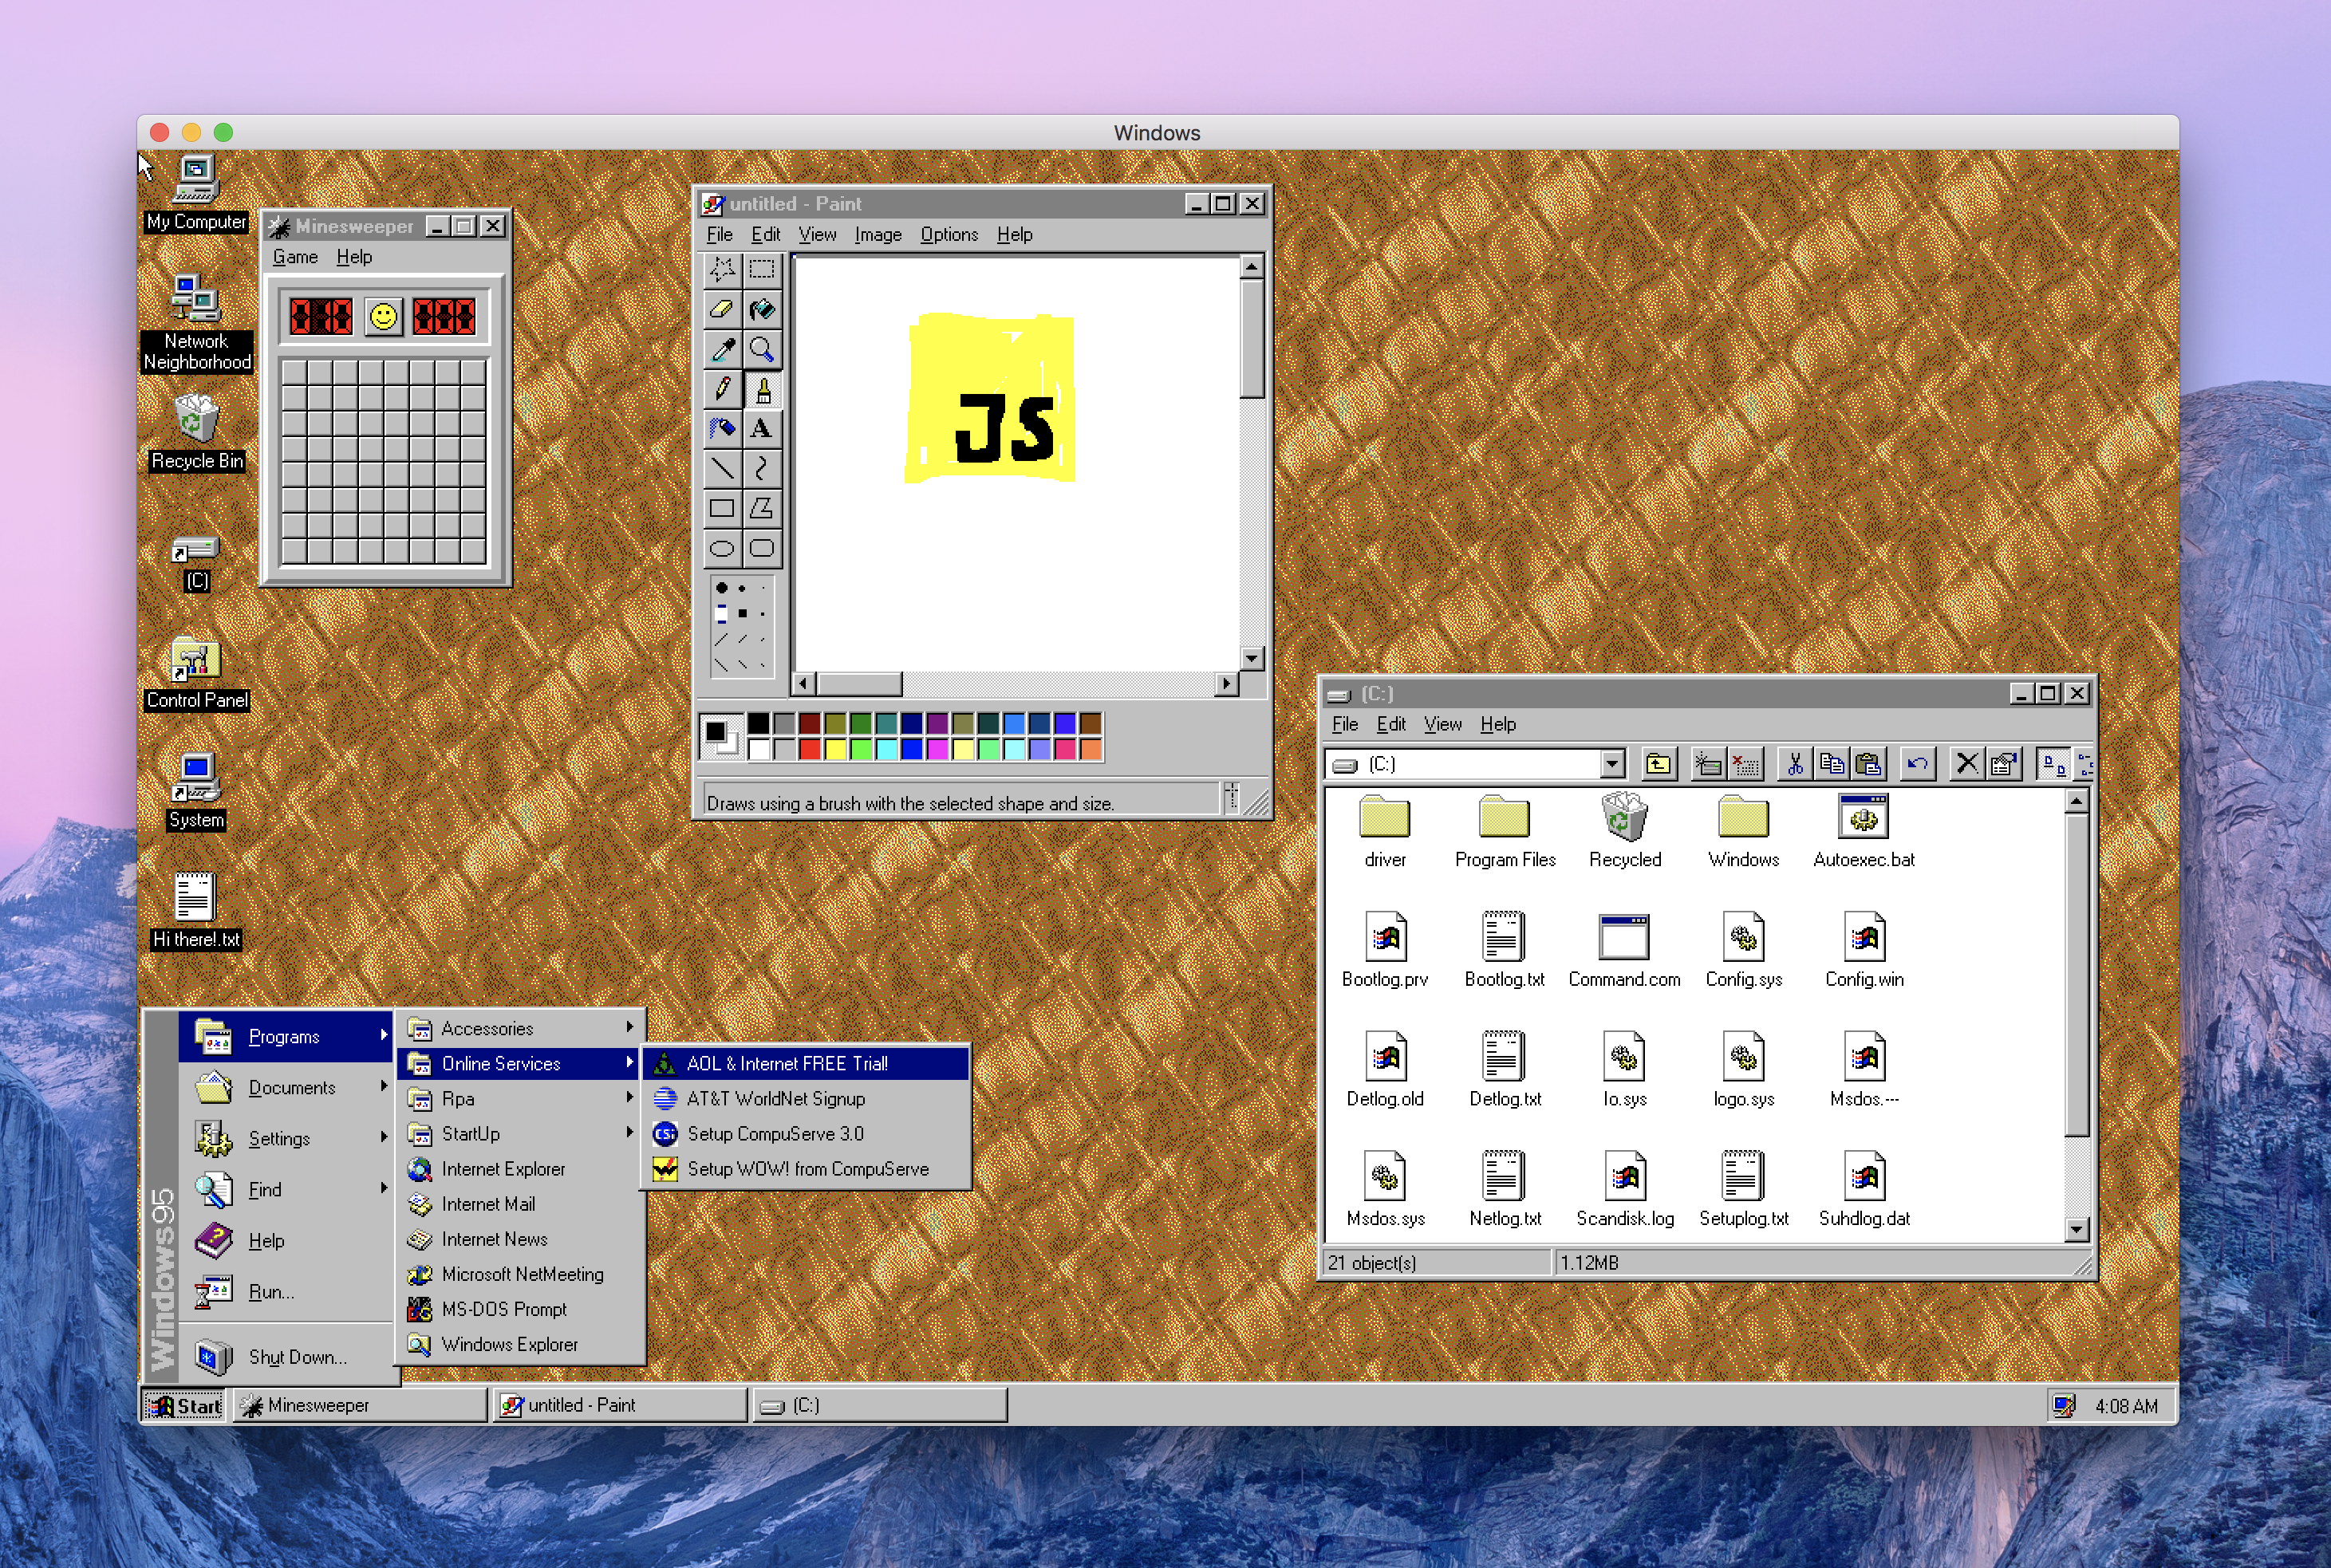 You can now run Windows 95 on your Mac, Linux and Windows 10